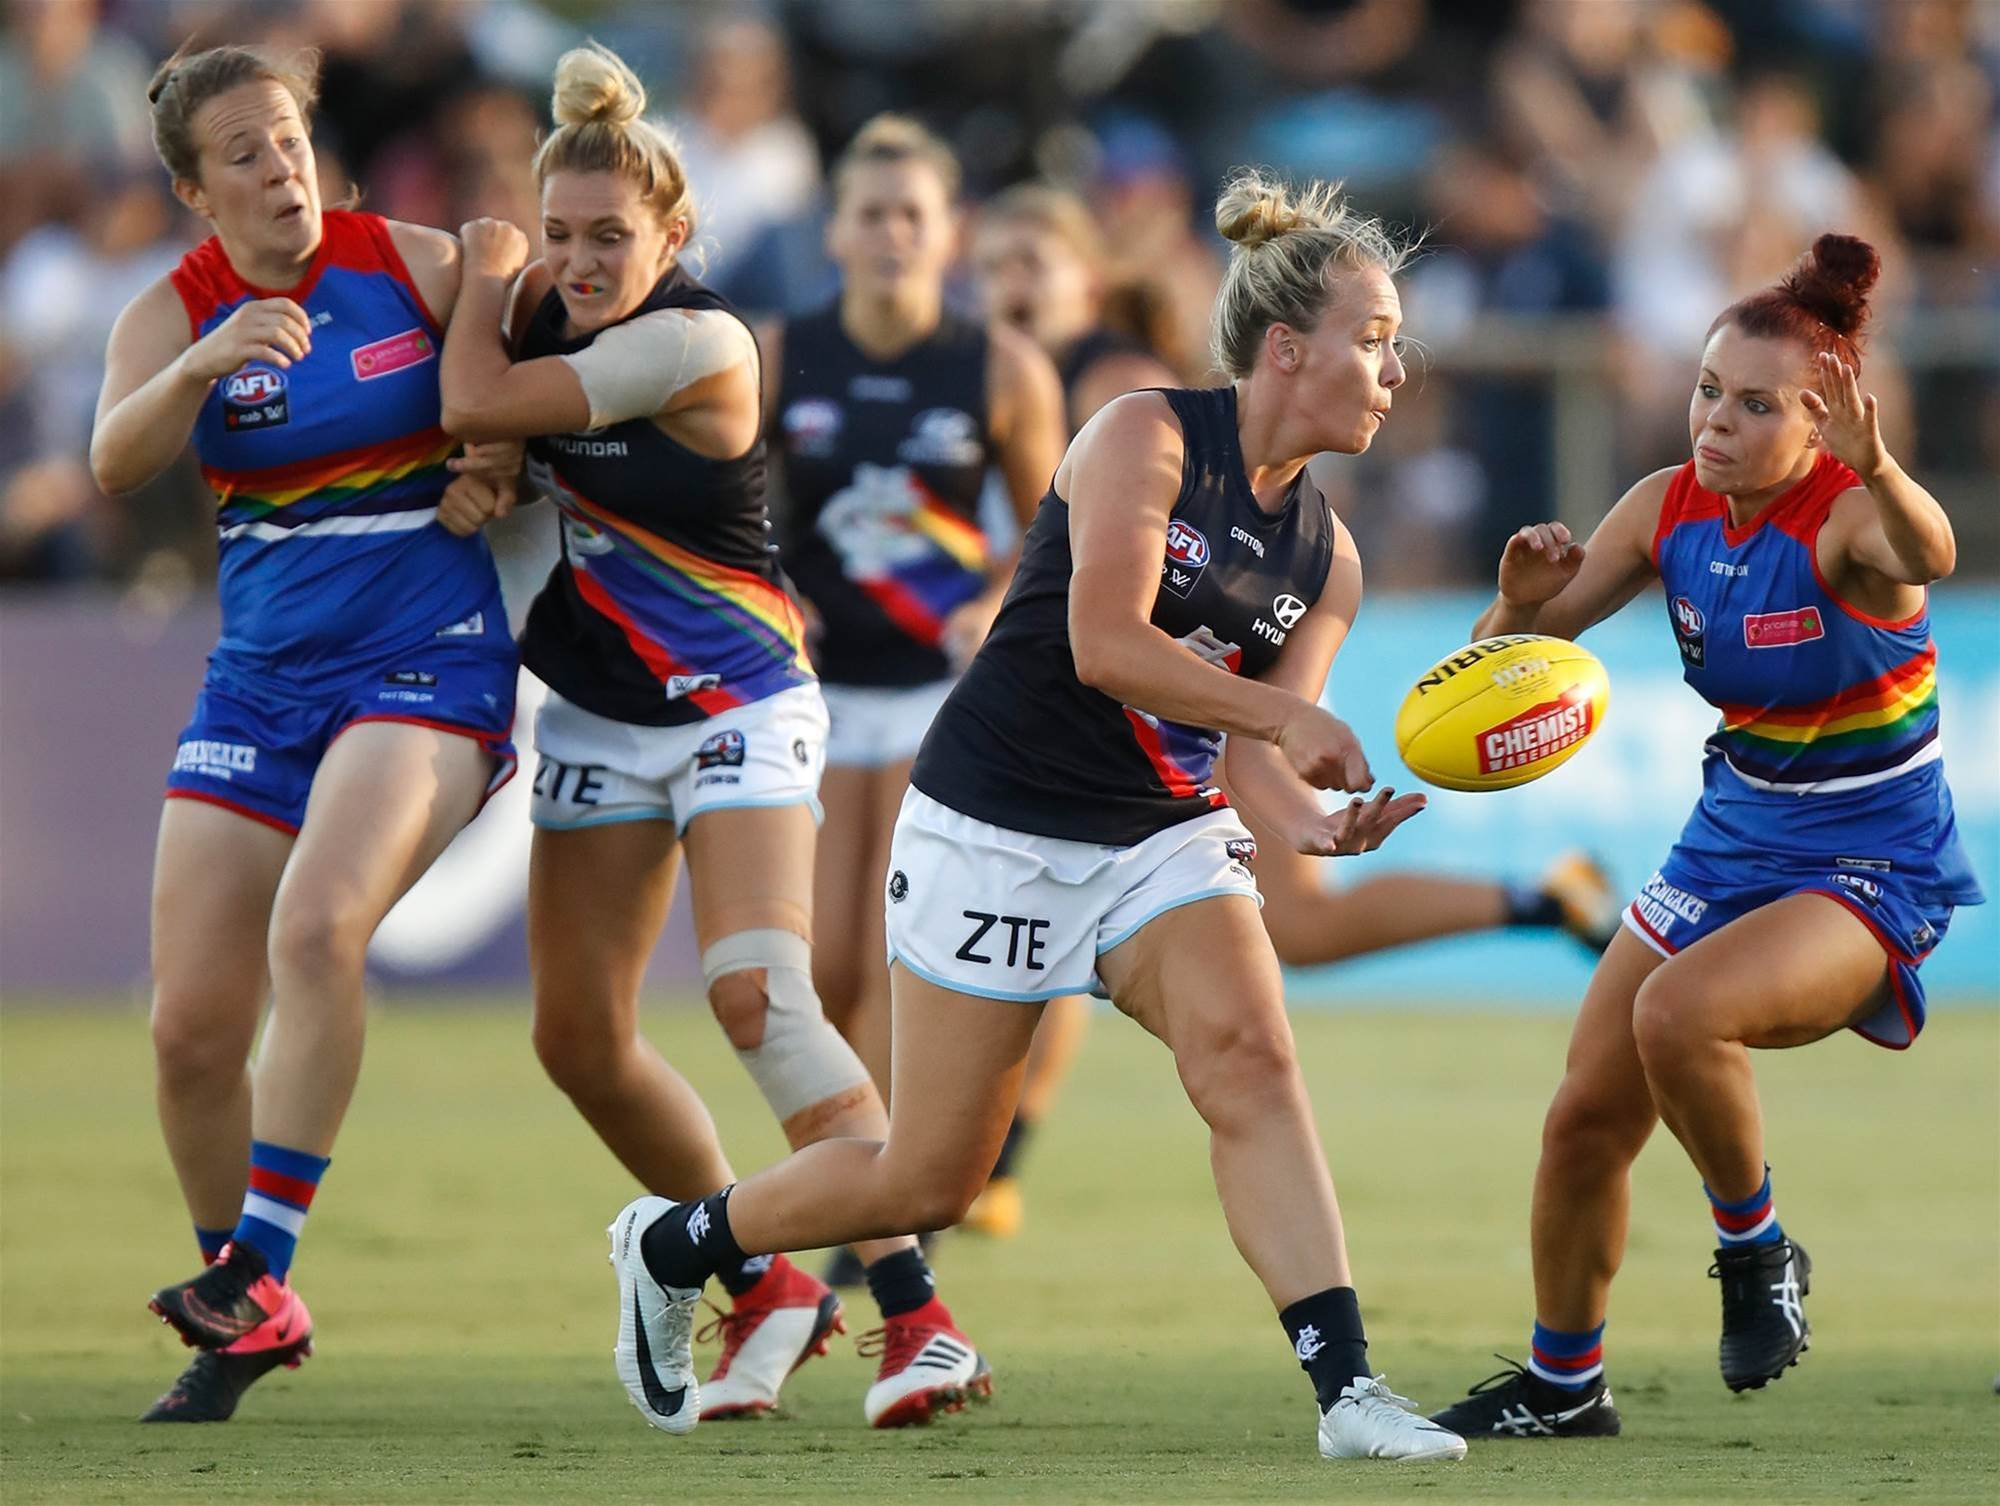 2018 Australia AFLW All-Australian Squad named